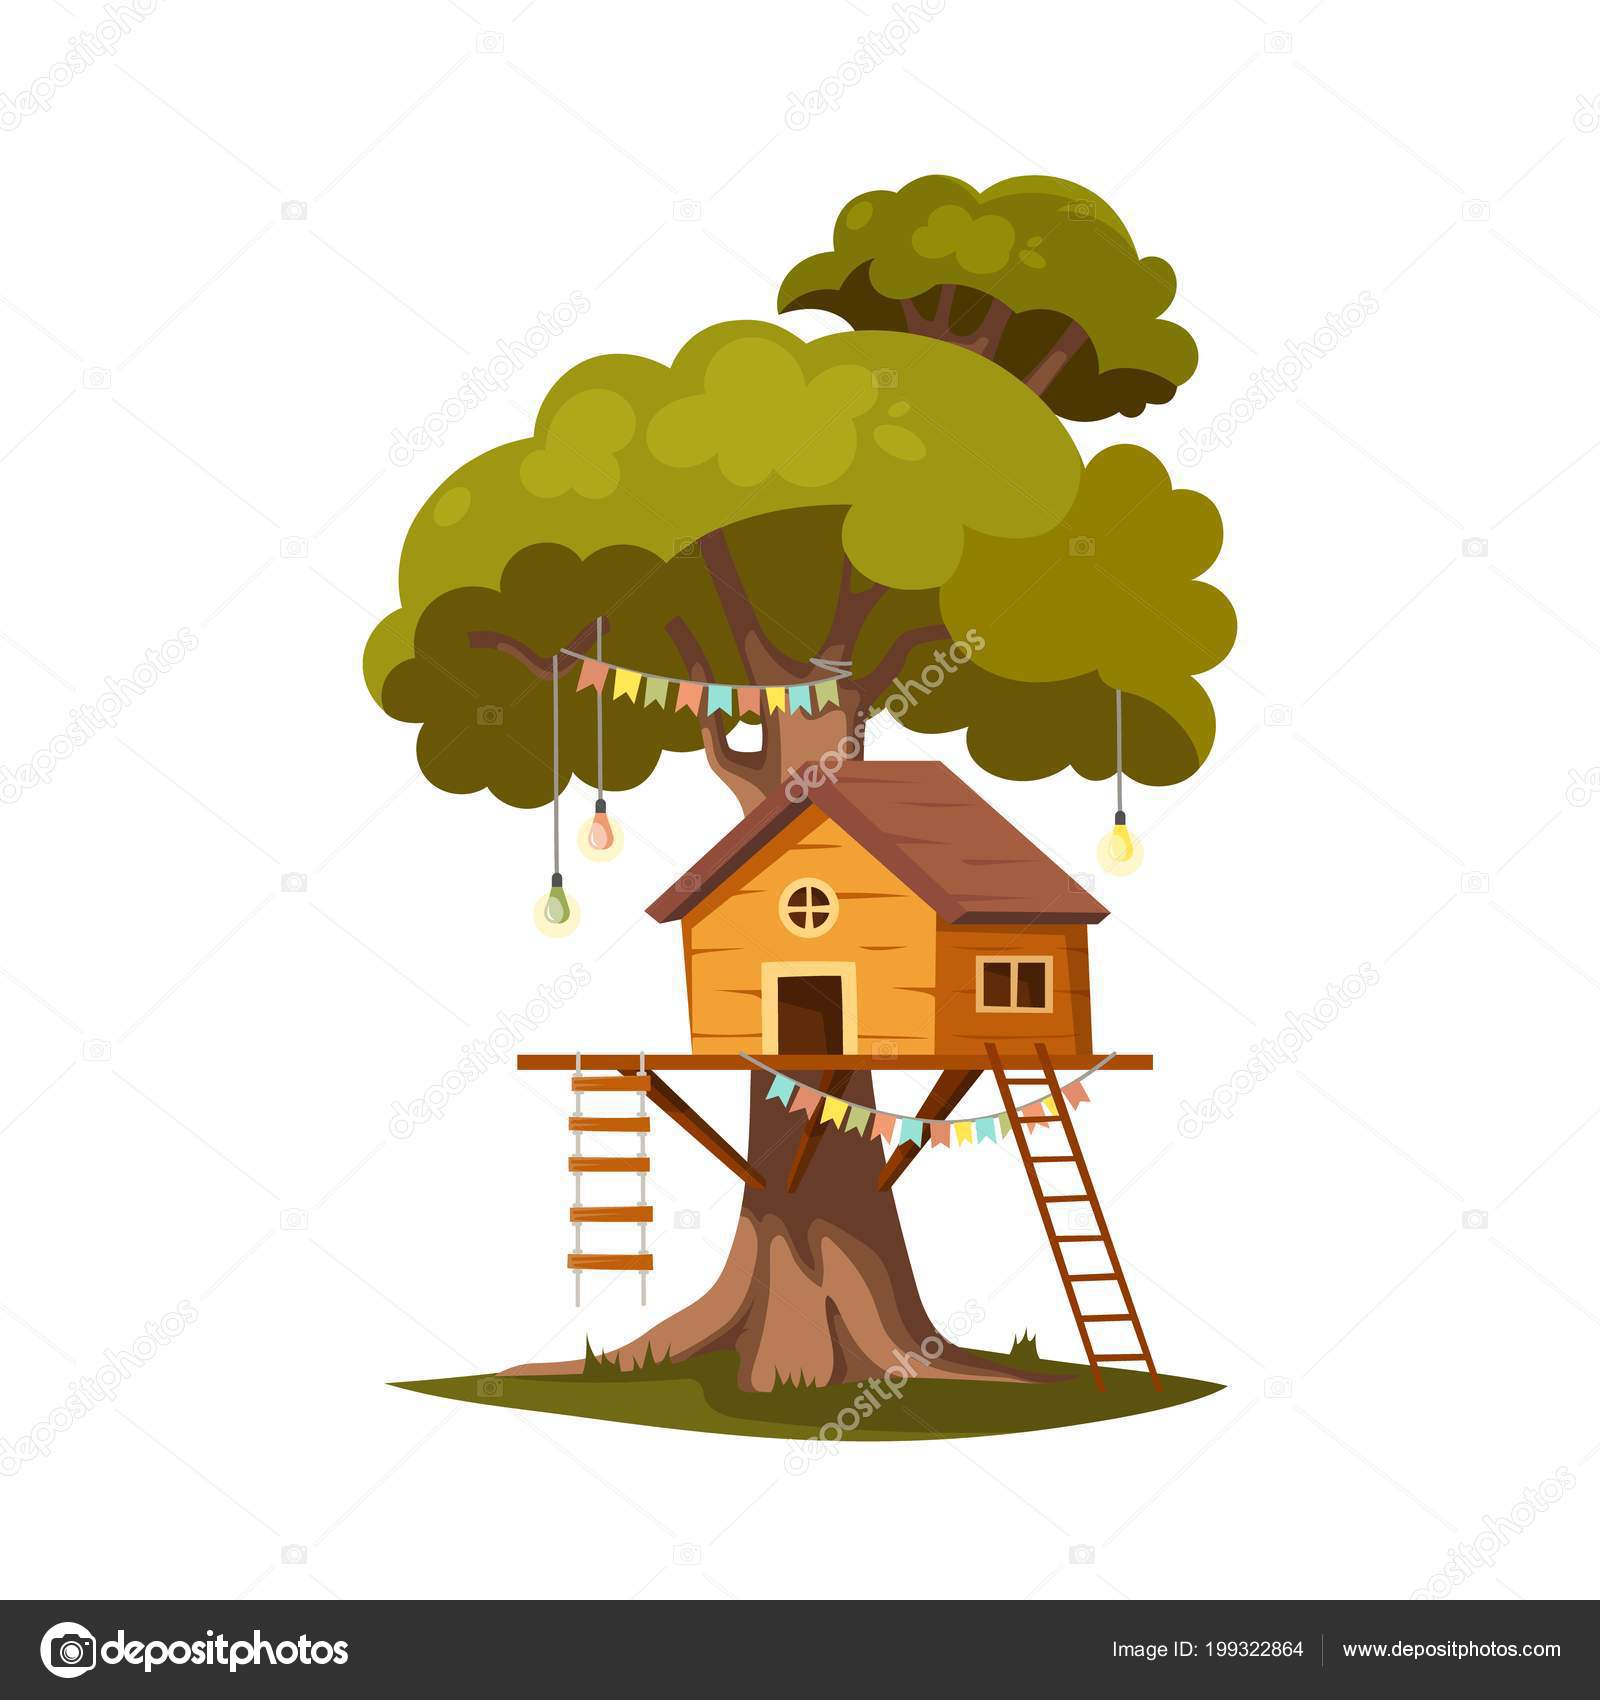 Áˆ Kid Tree House Stock Pictures Royalty Free Kids Treehouse Images Download On Depositphotos Free for commercial use no attribution required high quality images. https depositphotos com 199322864 stock illustration tree house for kids html